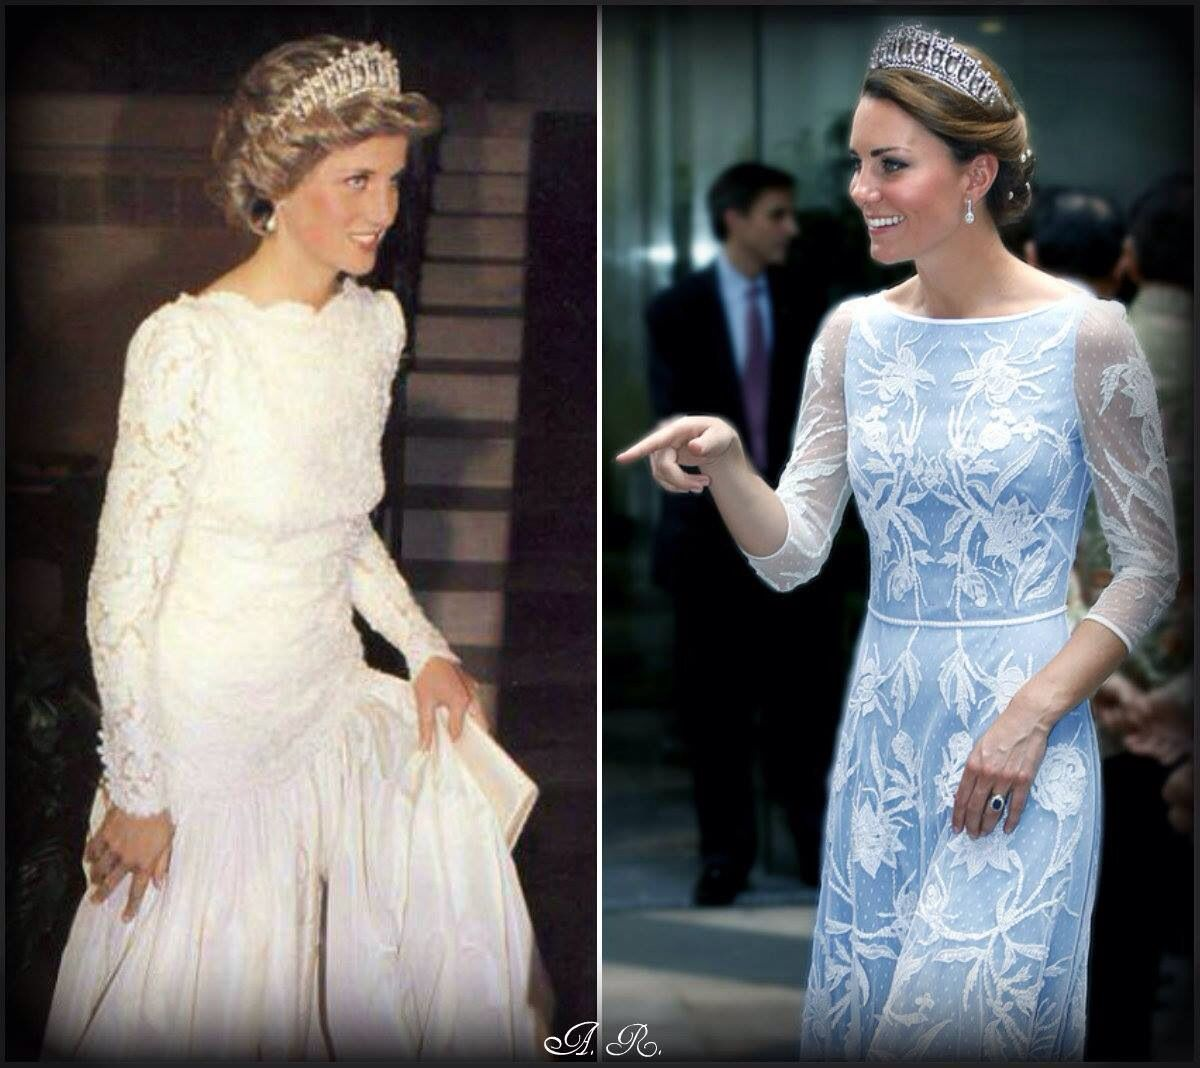 Love that Kate is wearing the Spencer Tiara!!!! Princess